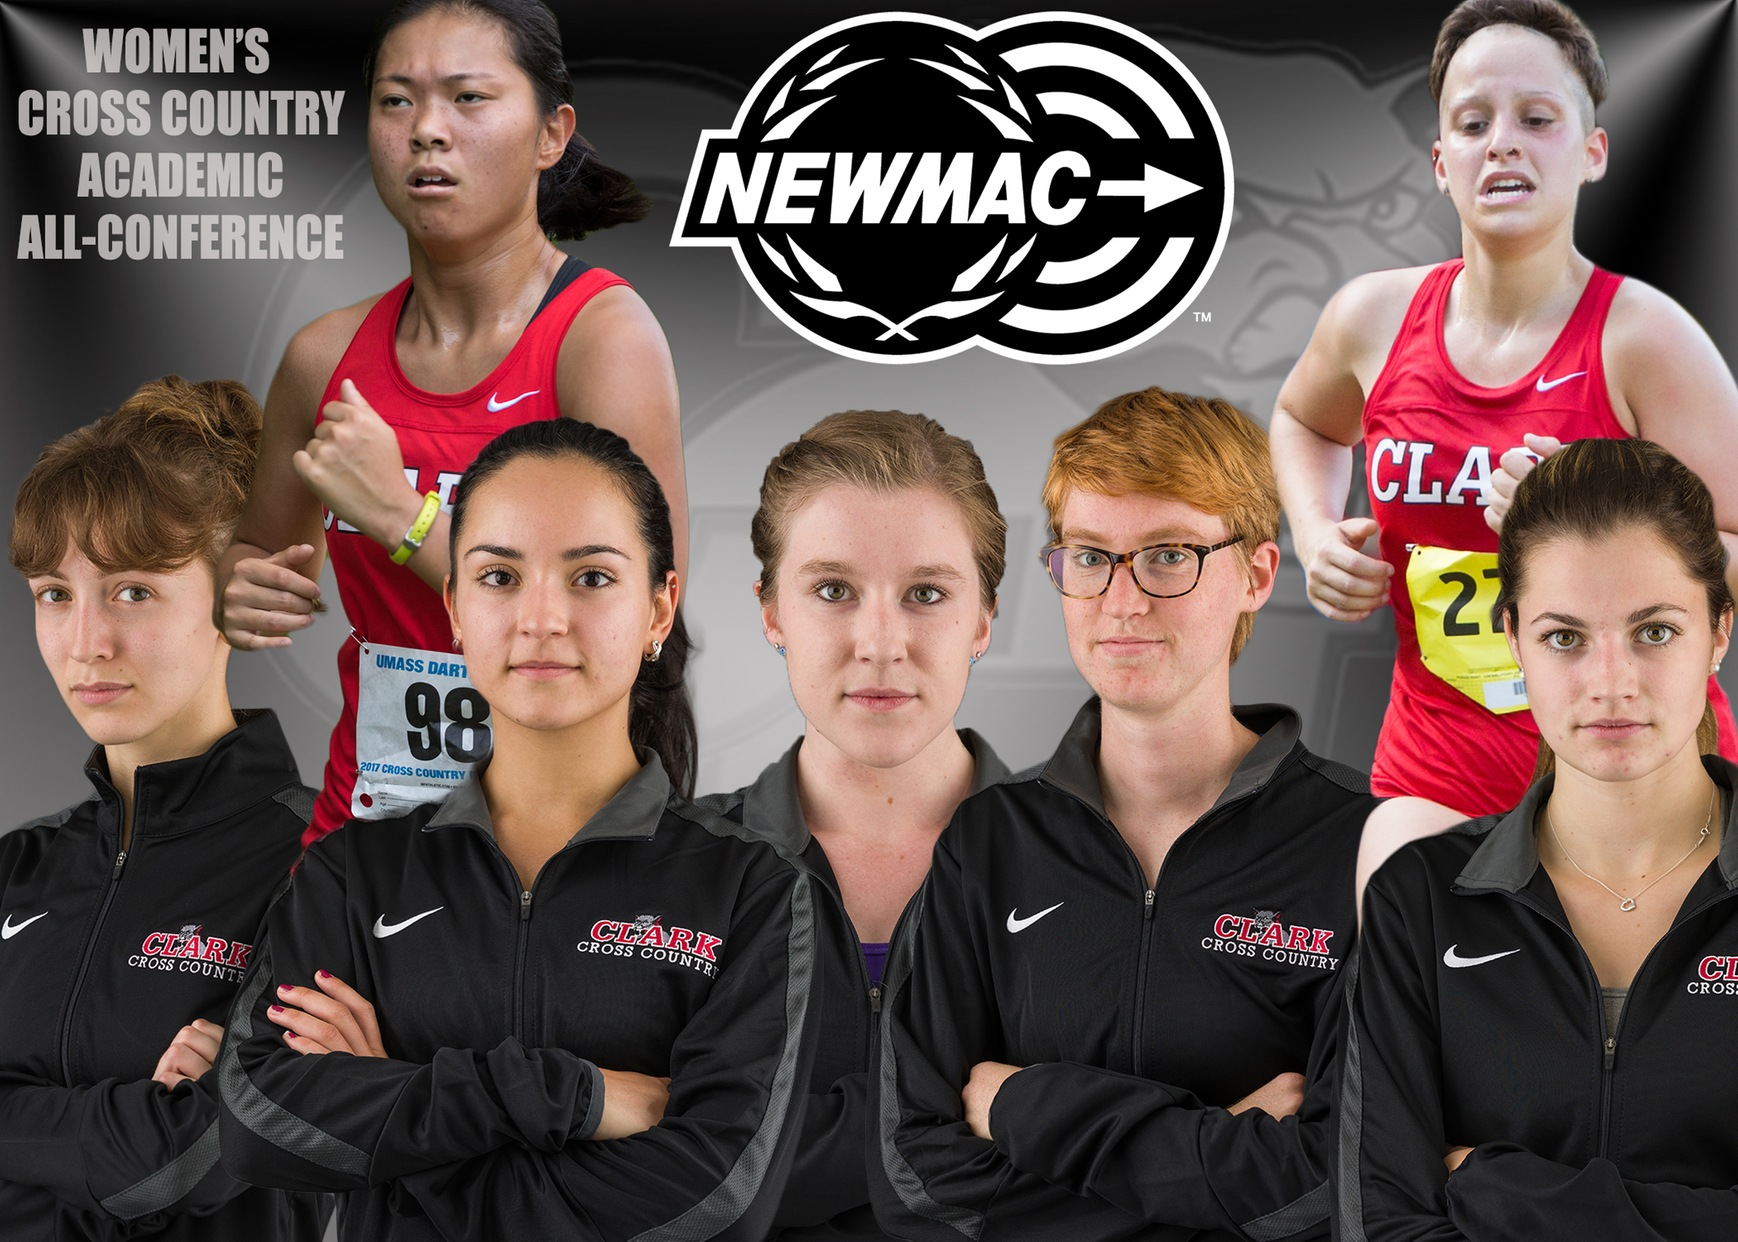 Women's Cross Country Places Seven on Academic All-Conference List